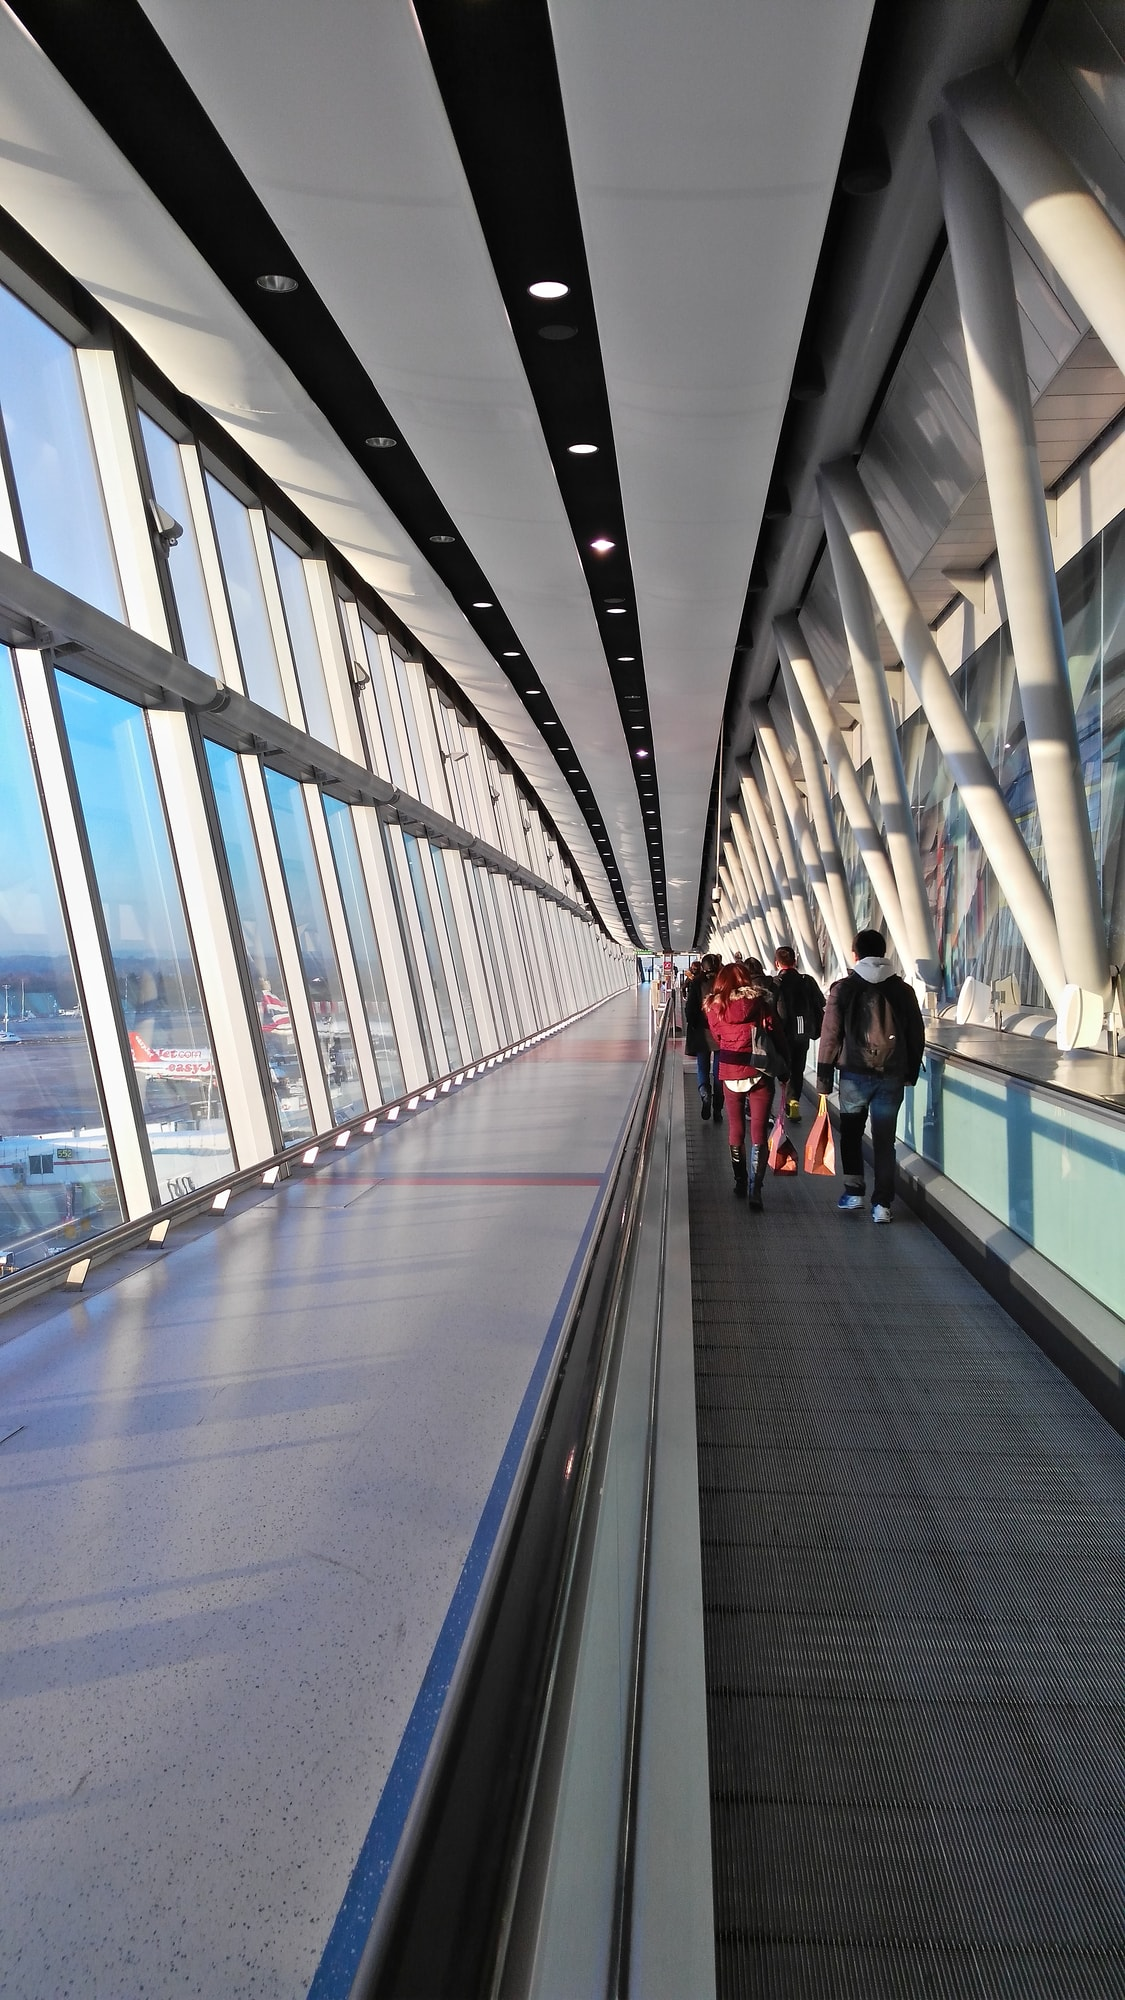 walkway inside Gatwick Airport, first part of the journey from Gatwick to London